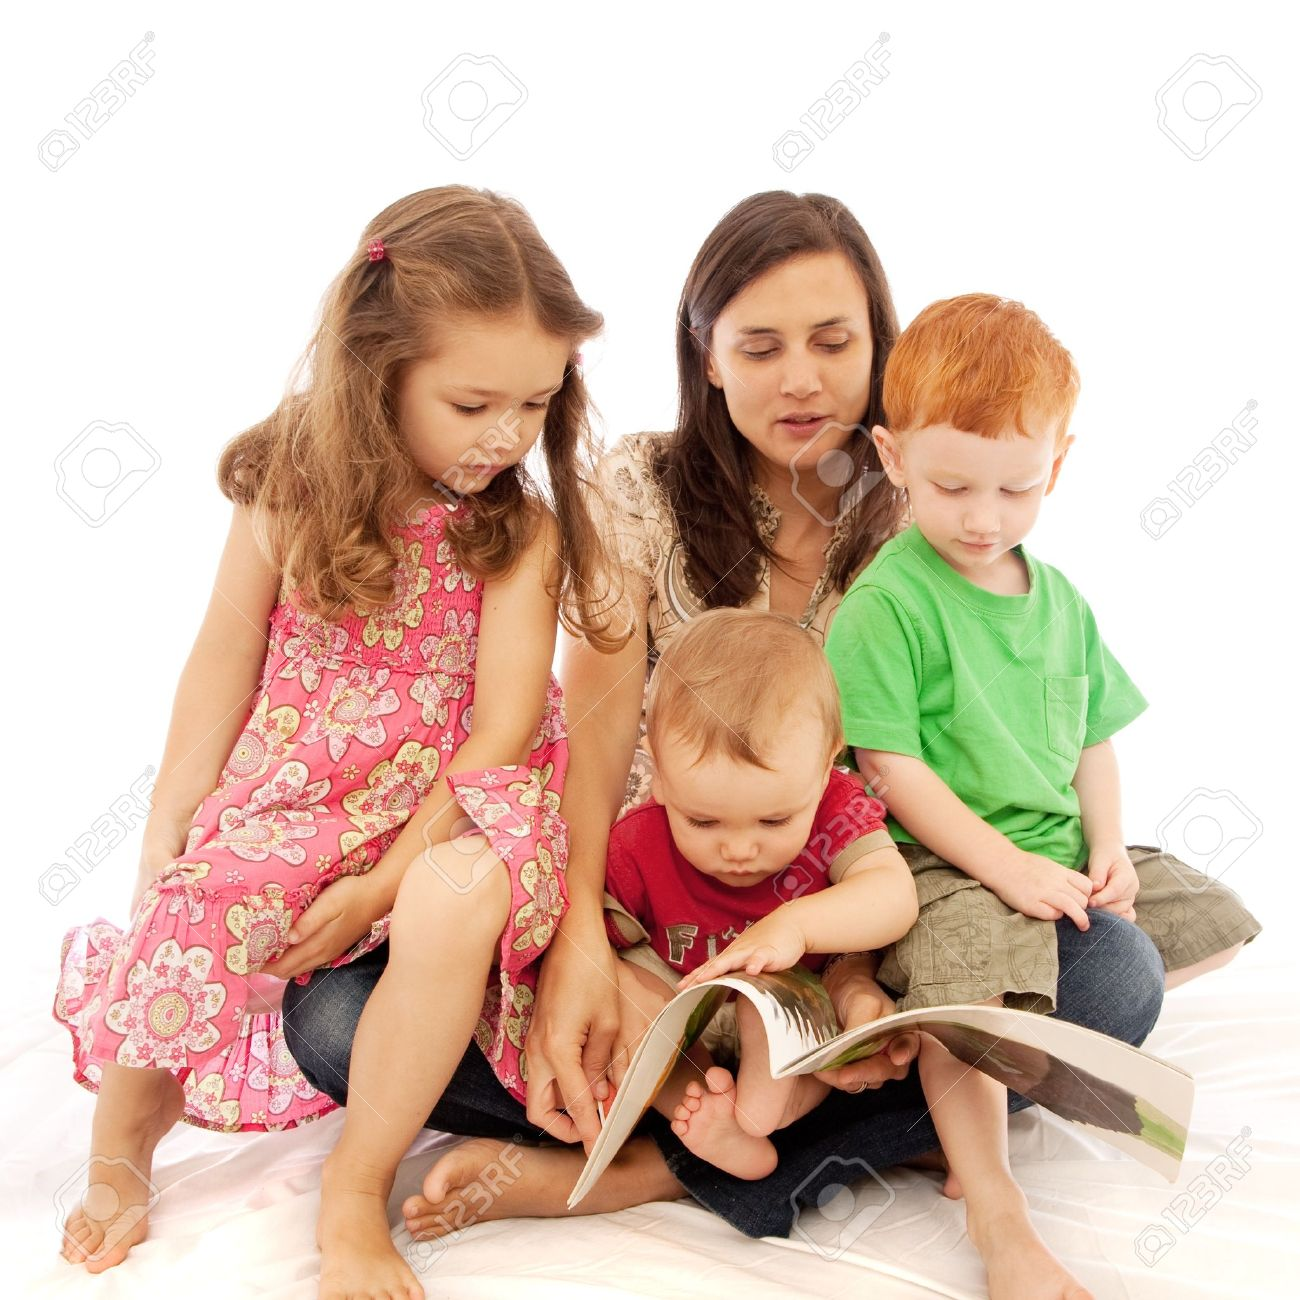 Mum reading to three young kids on her lap - 15155171